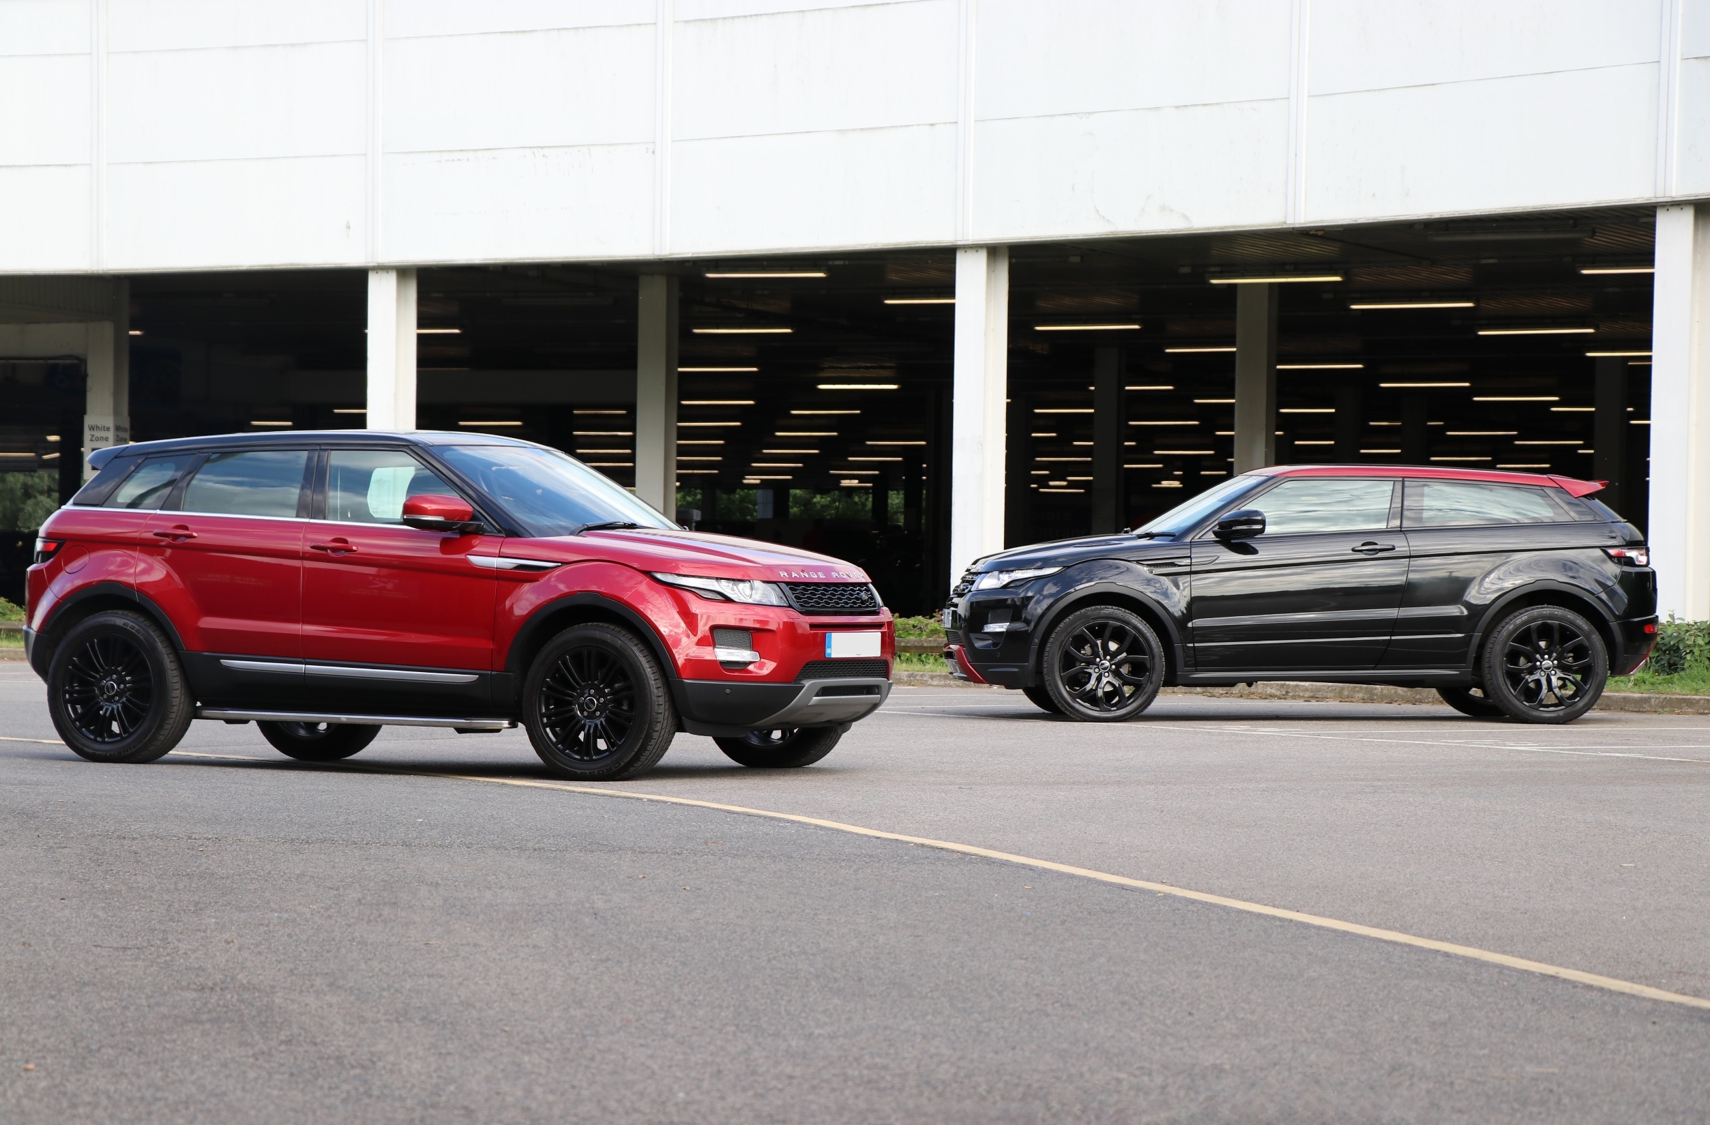 Range Rover Evoques styled by Seeker Styling